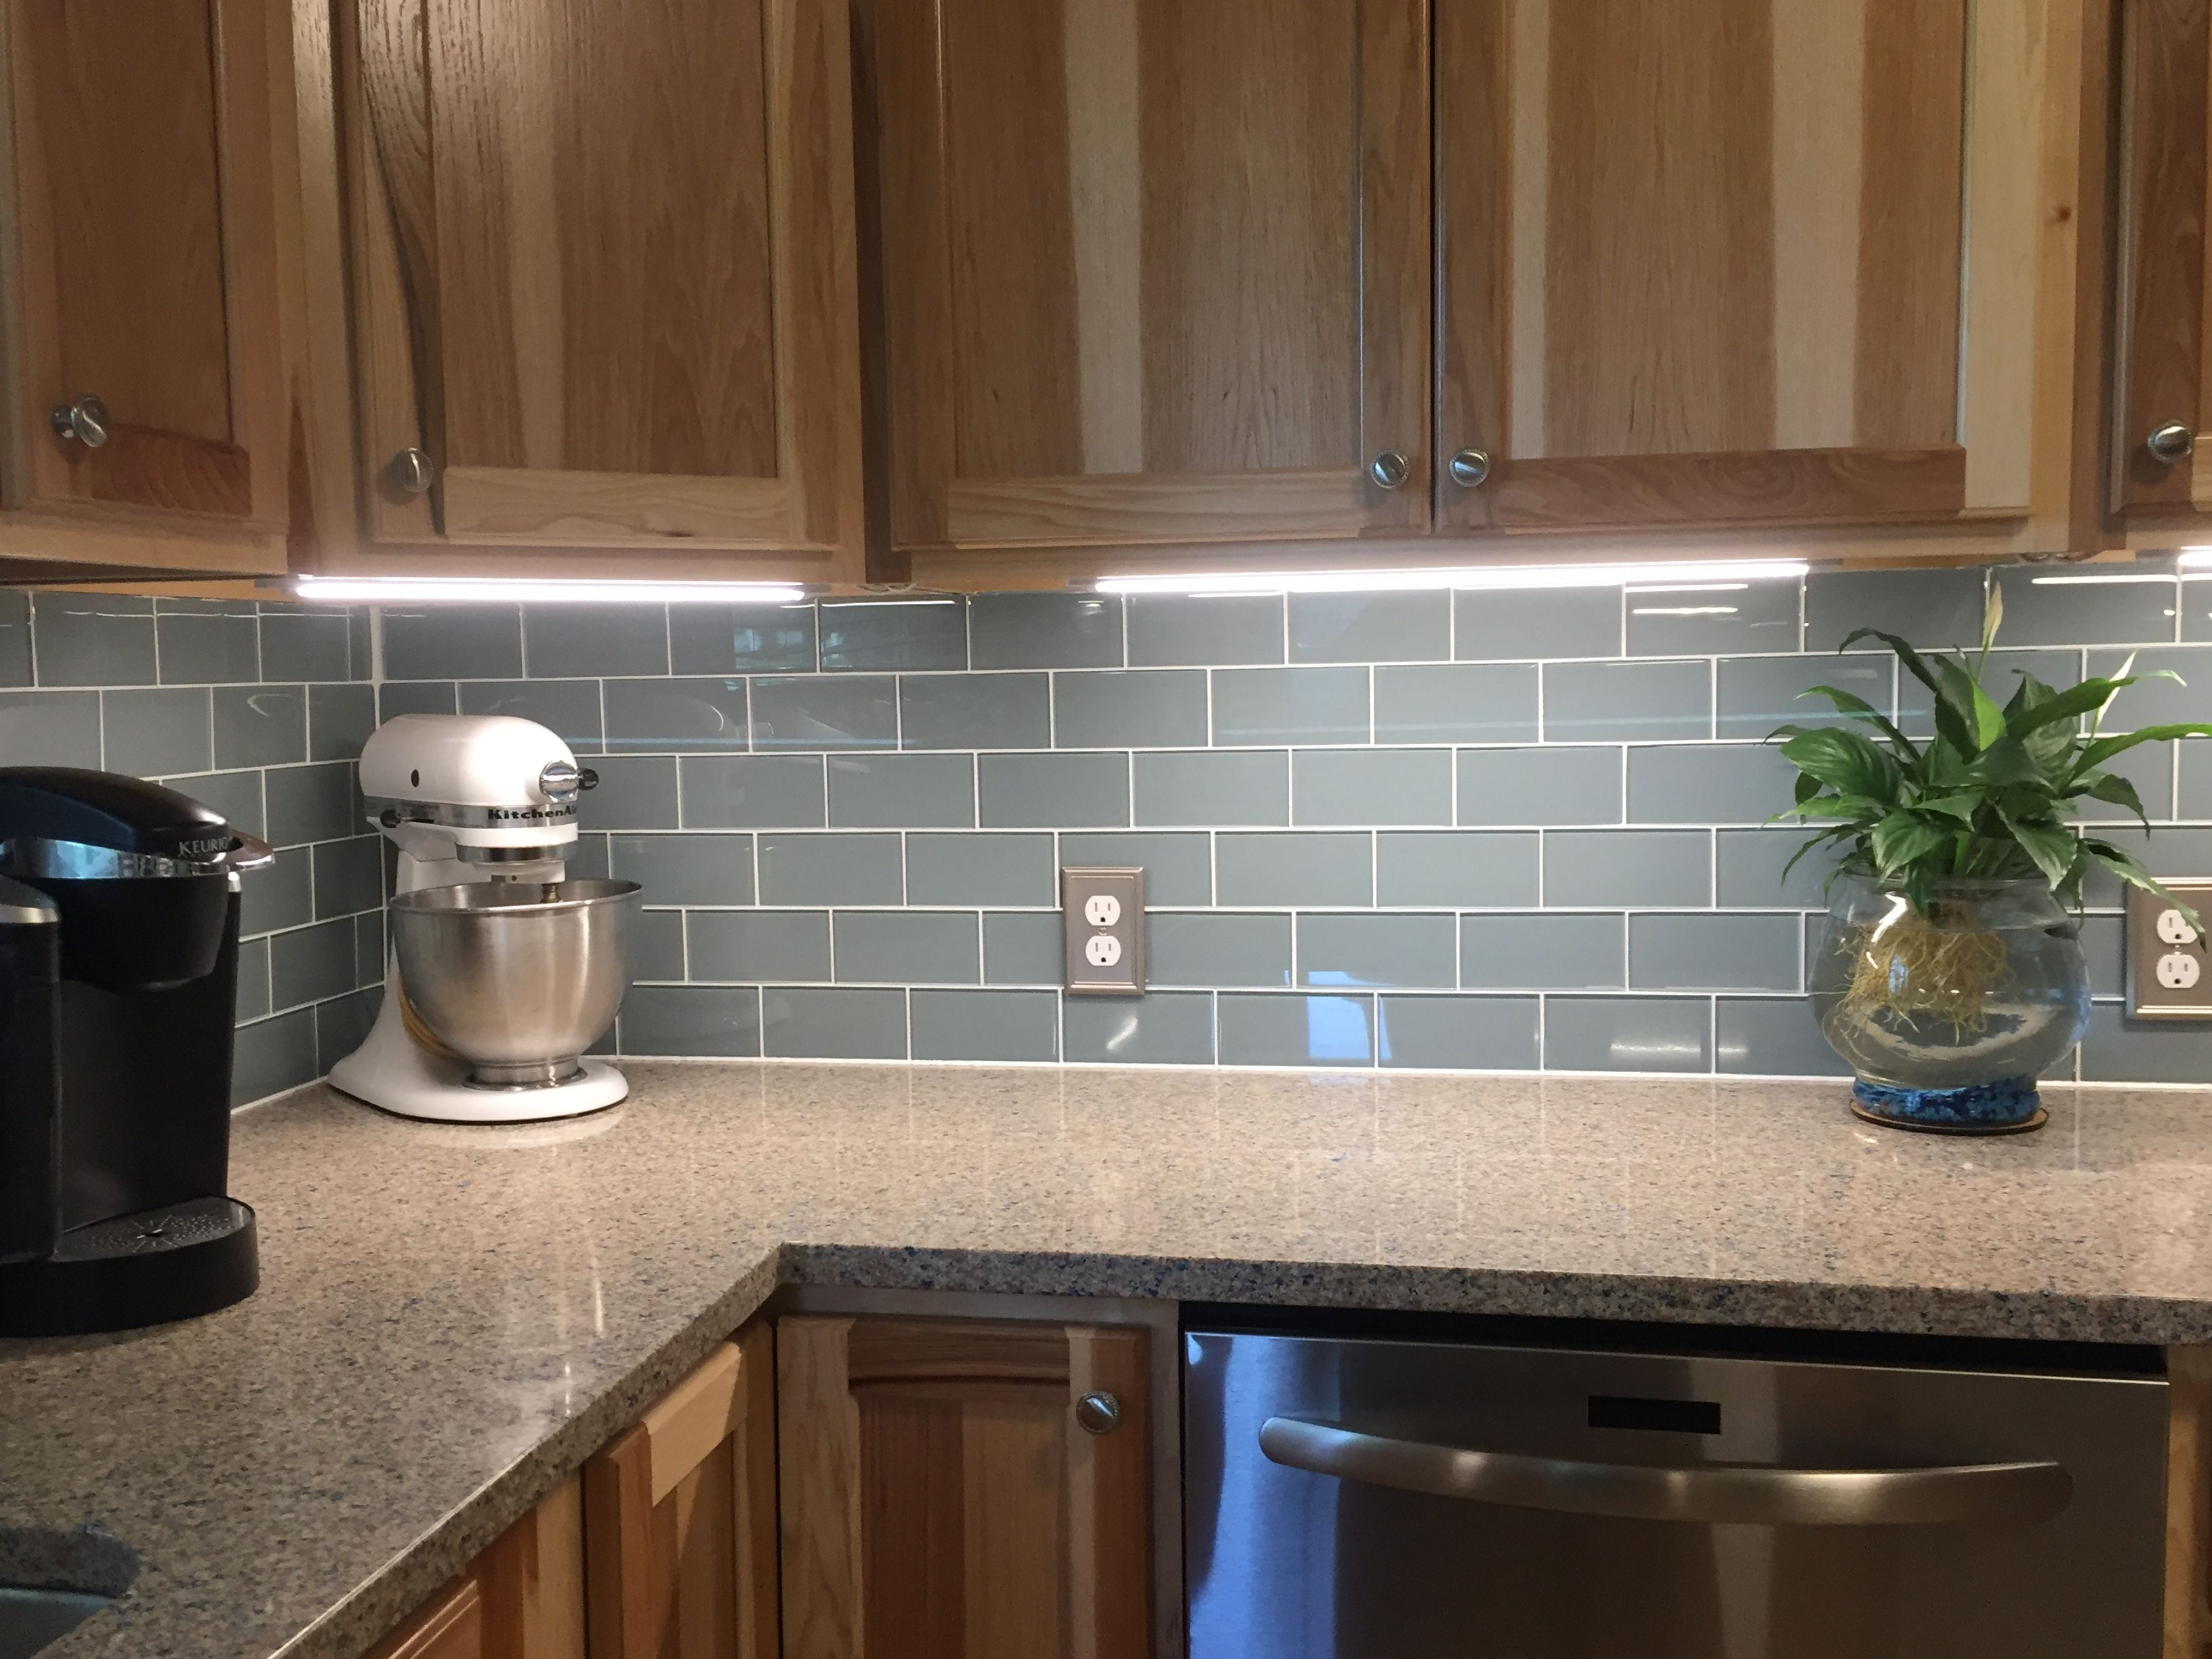 Smoky Blue Glass Tile Backsplash And Under Cabinet Lighting Light Kitchen Cabinets Blue Glass Tile Backsplash Glass Tile Backsplash